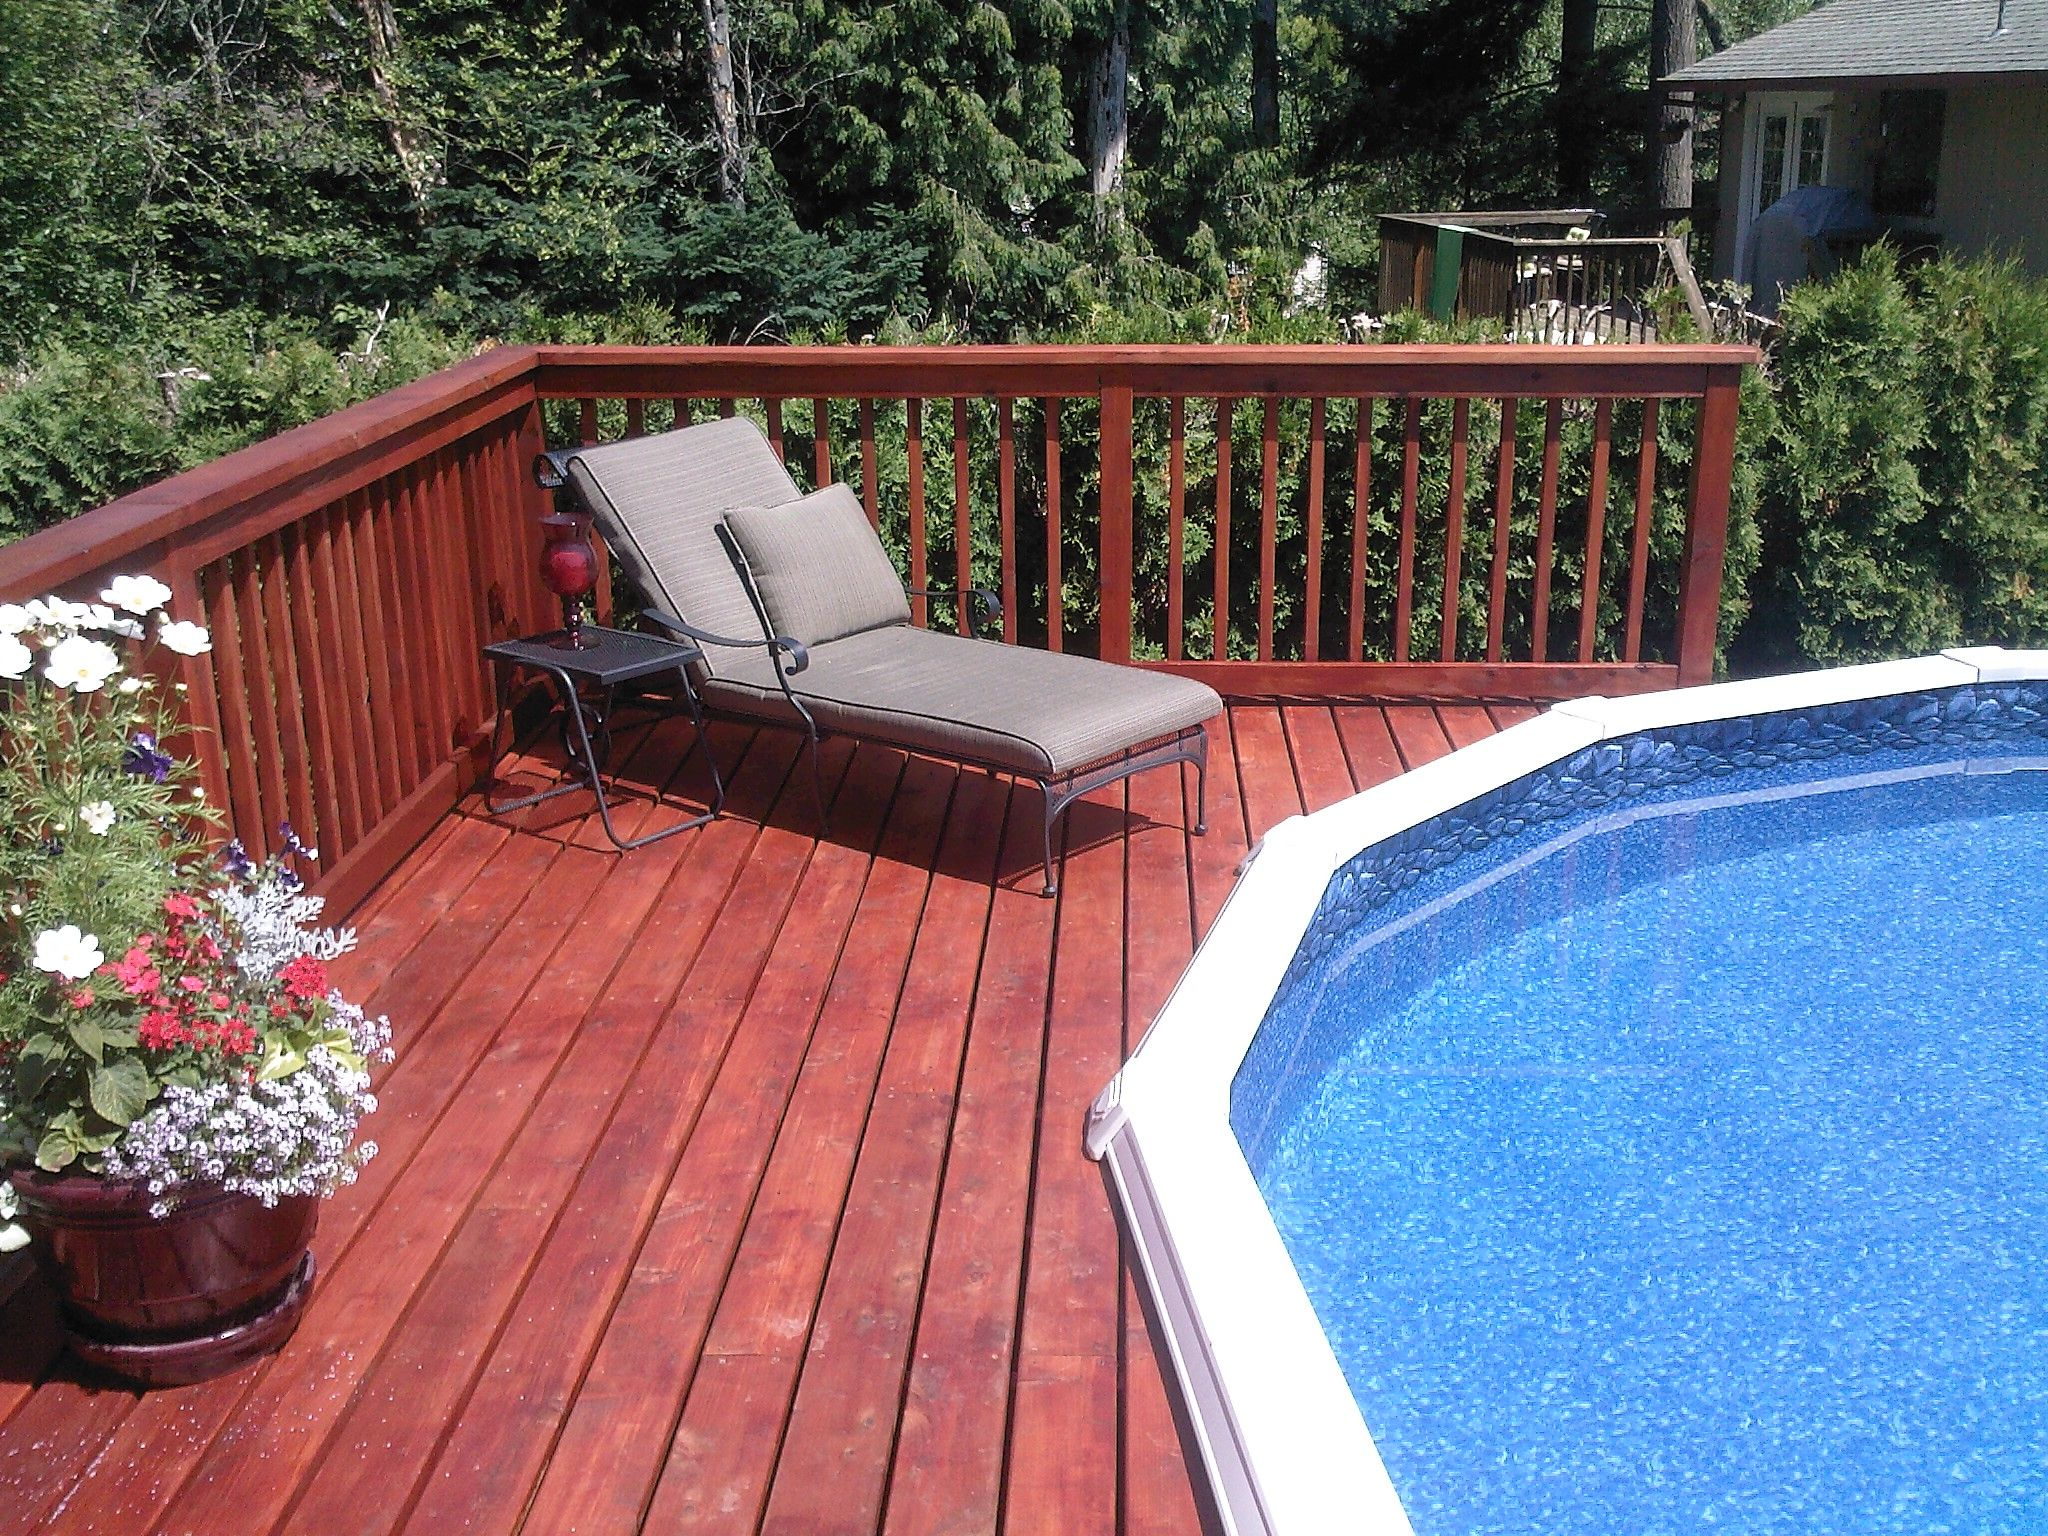 Pool decks above ground pictures - Above Ground Pool Decks Above Ground Pool Deck Get The Facts Patio Deck